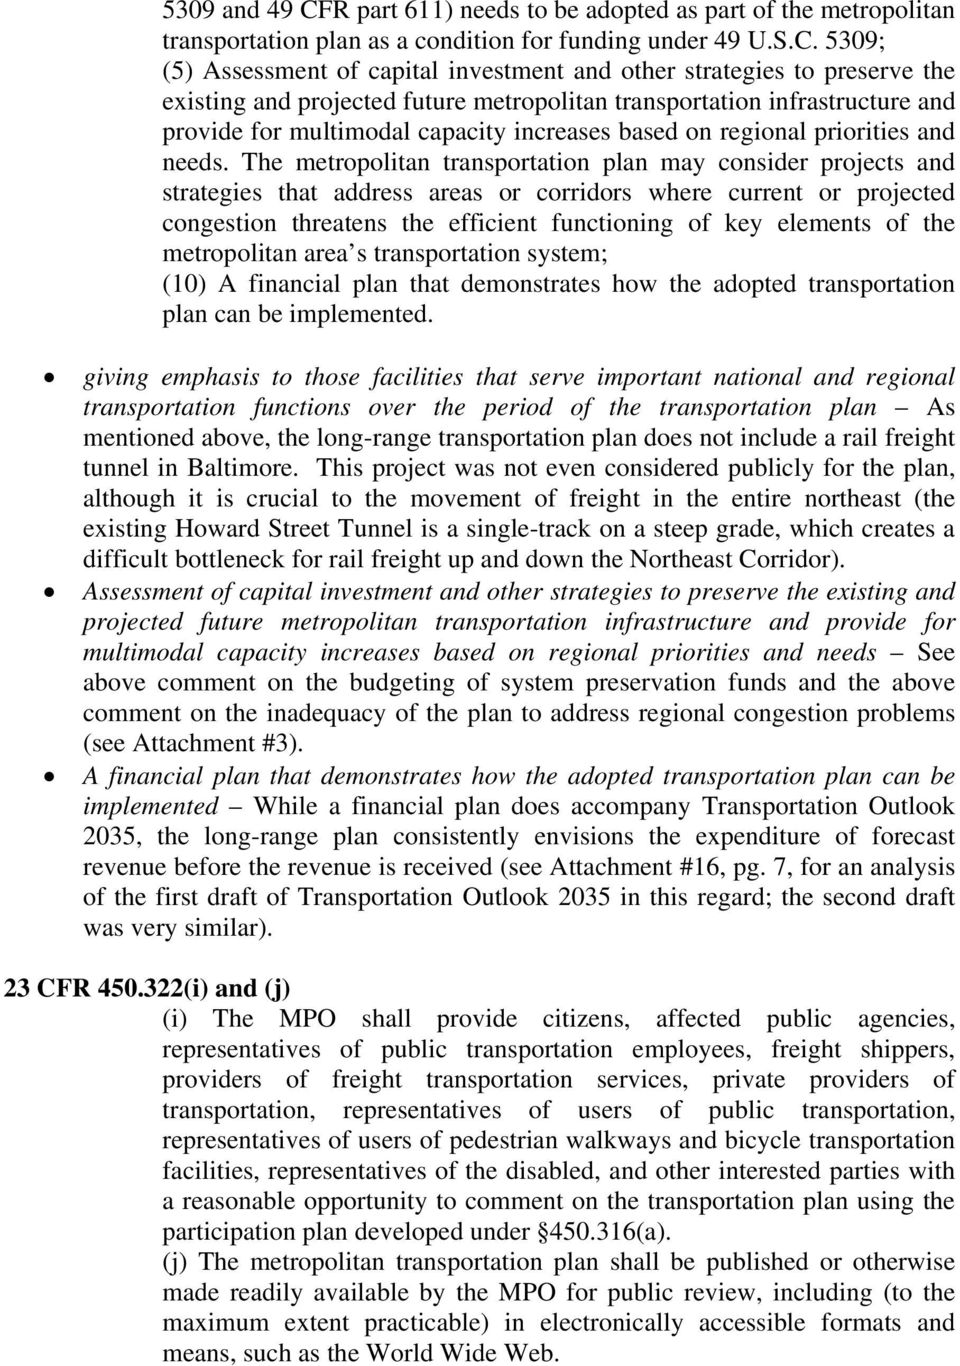 5309; (5) Assessment of capital investment and other strategies to preserve the existing and projected future metropolitan transportation infrastructure and provide for multimodal capacity increases